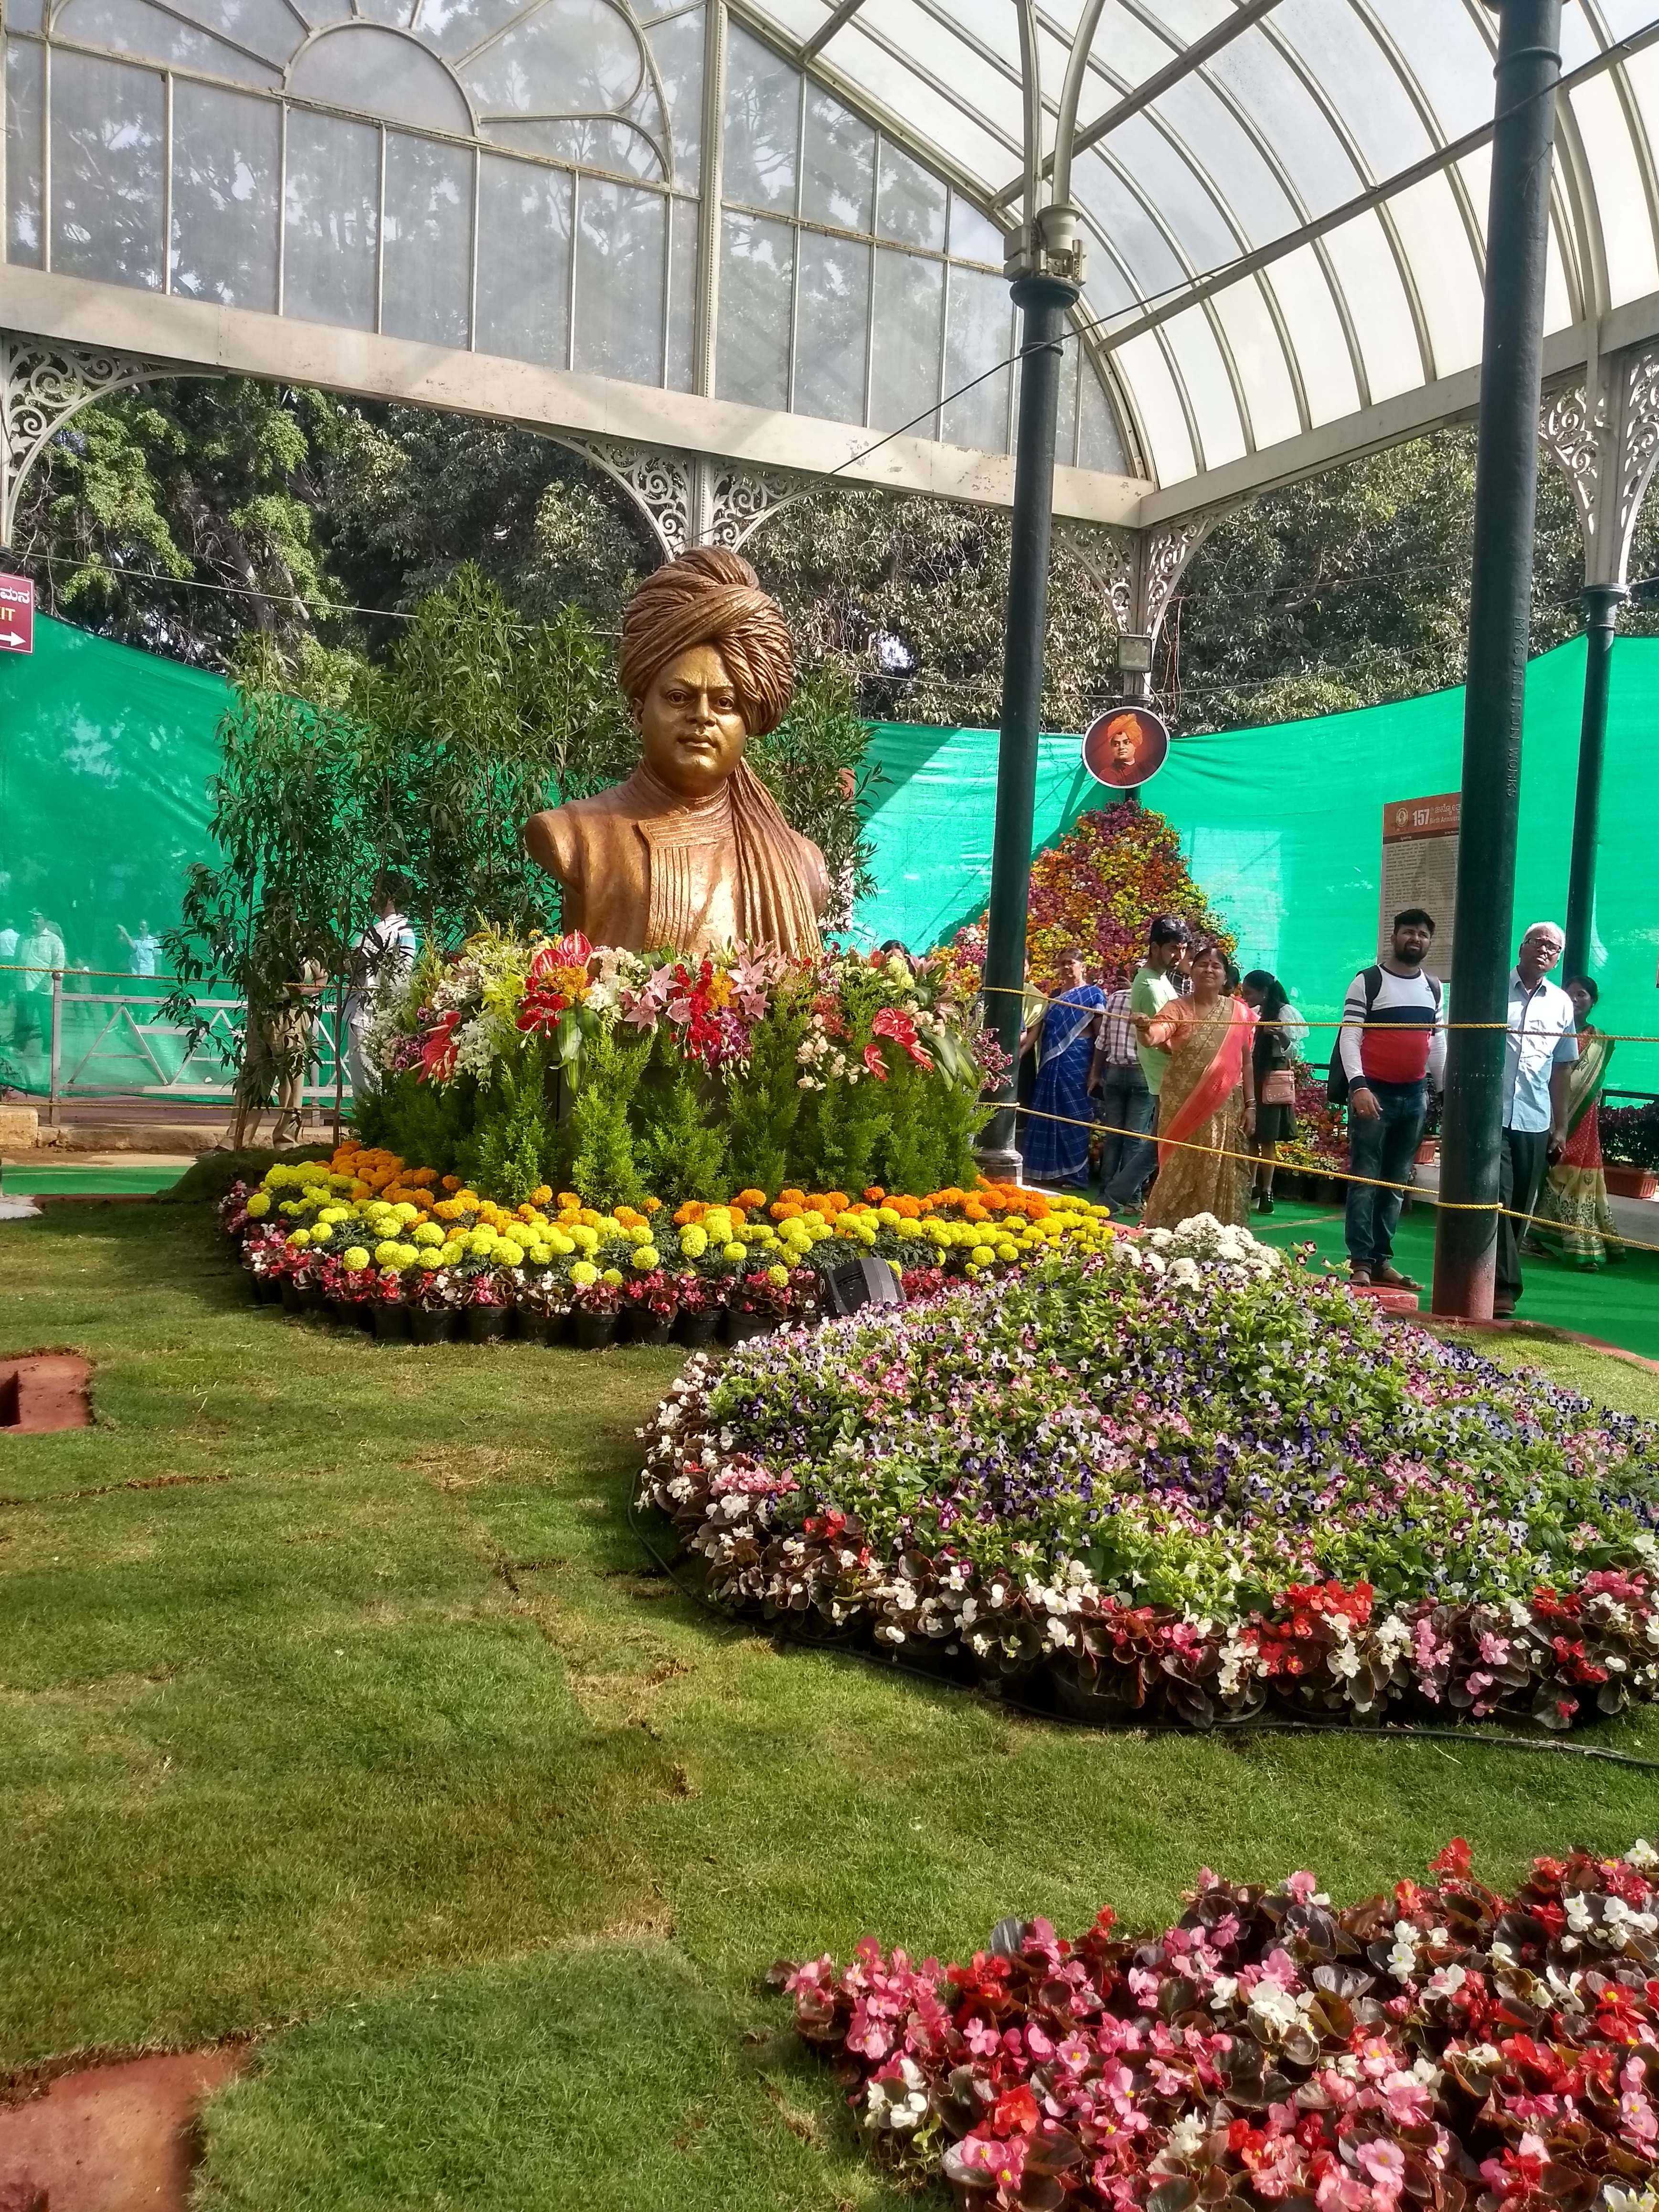 The Republic Day Lalbagh Flower Show 2020 from January 17 to 26